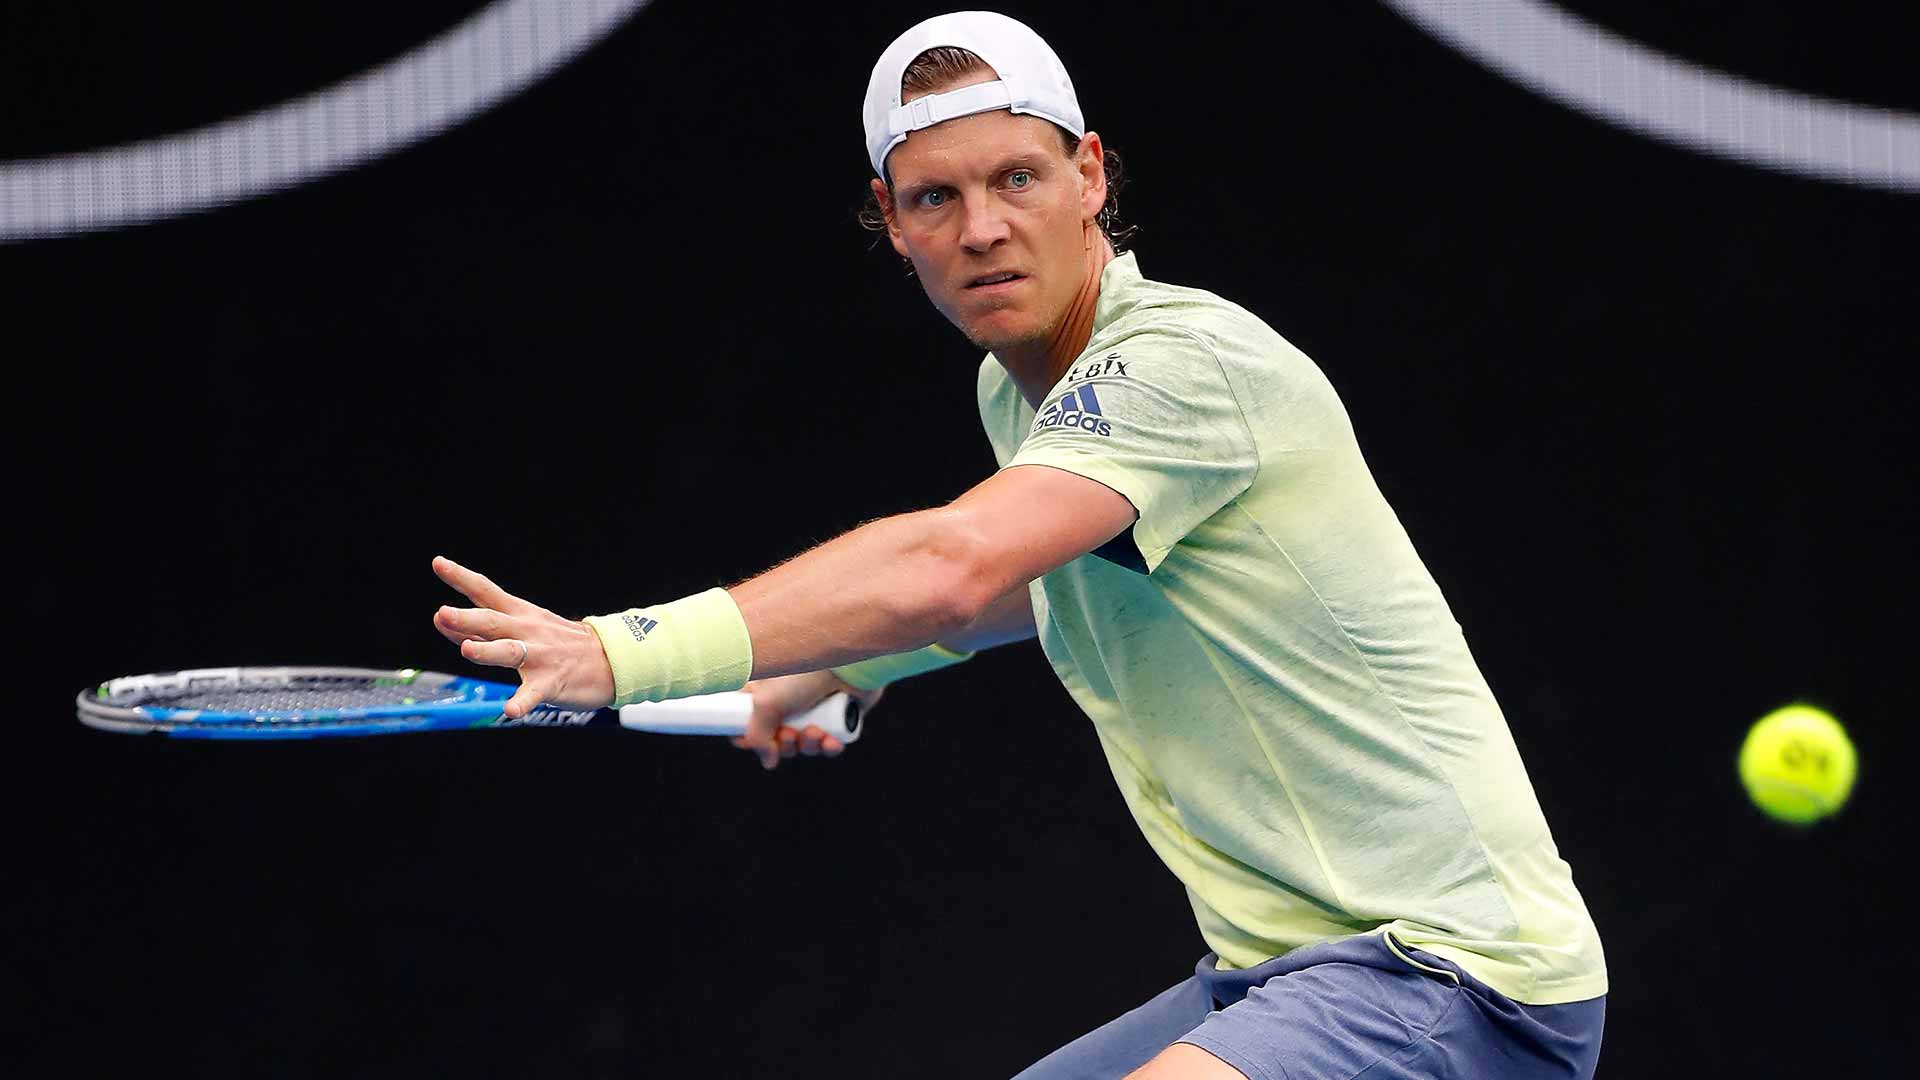 berdych-tt-australian-open-2018-saturday.jpg